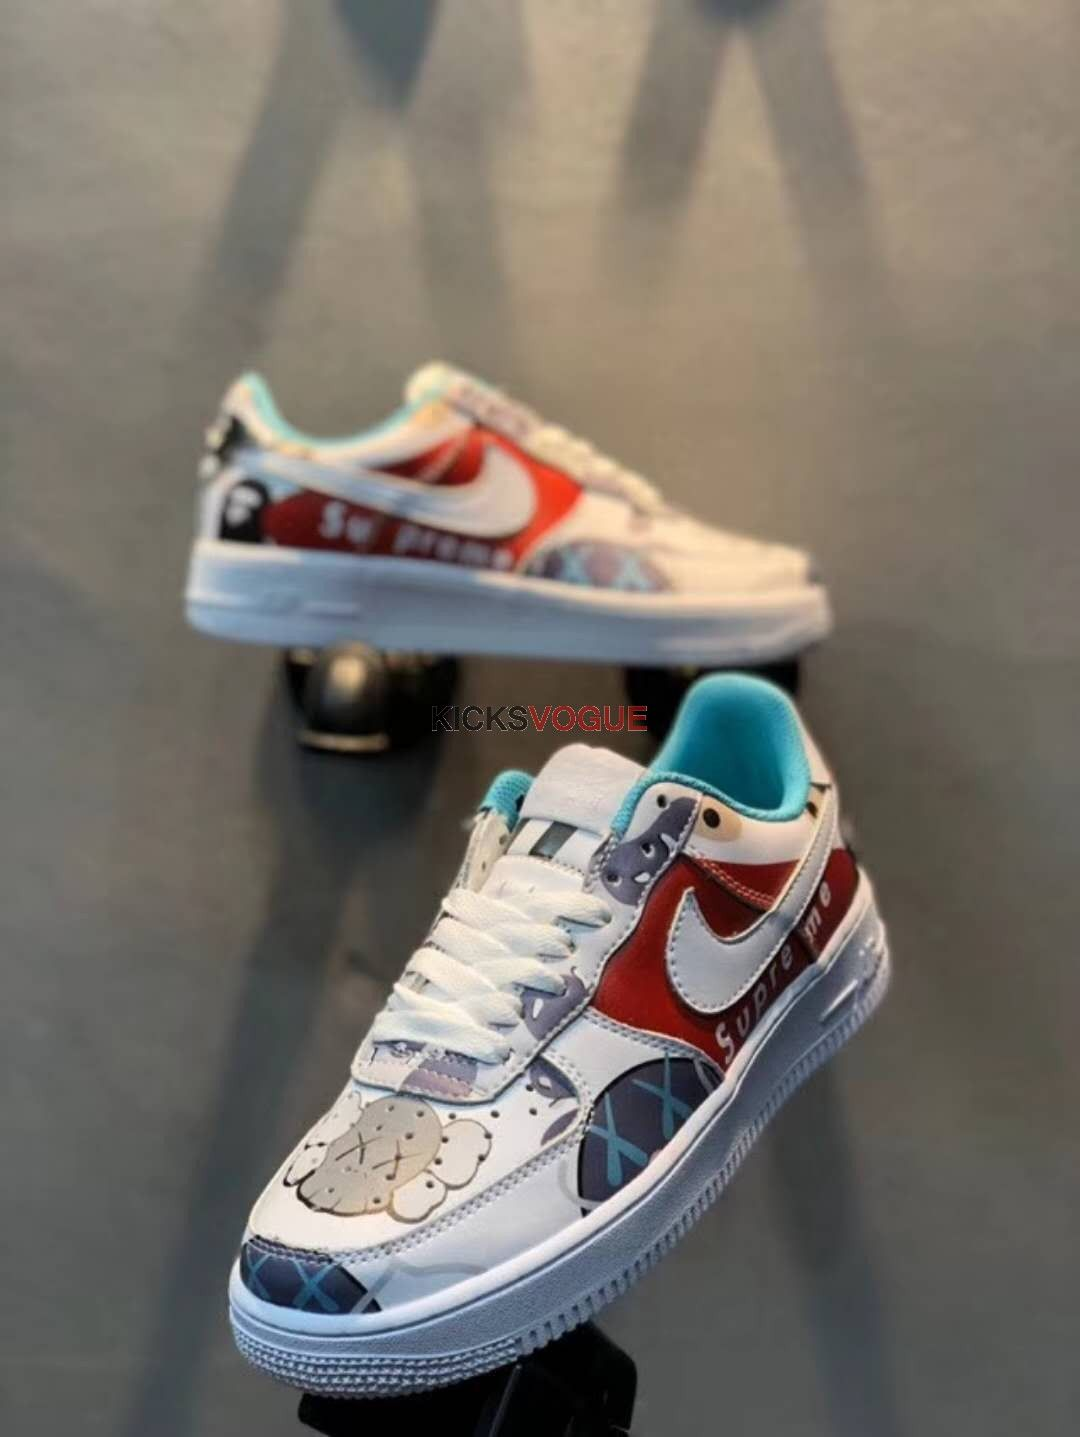 d2e5772c4cb9 Custom Supreme x Bape x Kaws x Nike Air Force 1 Low